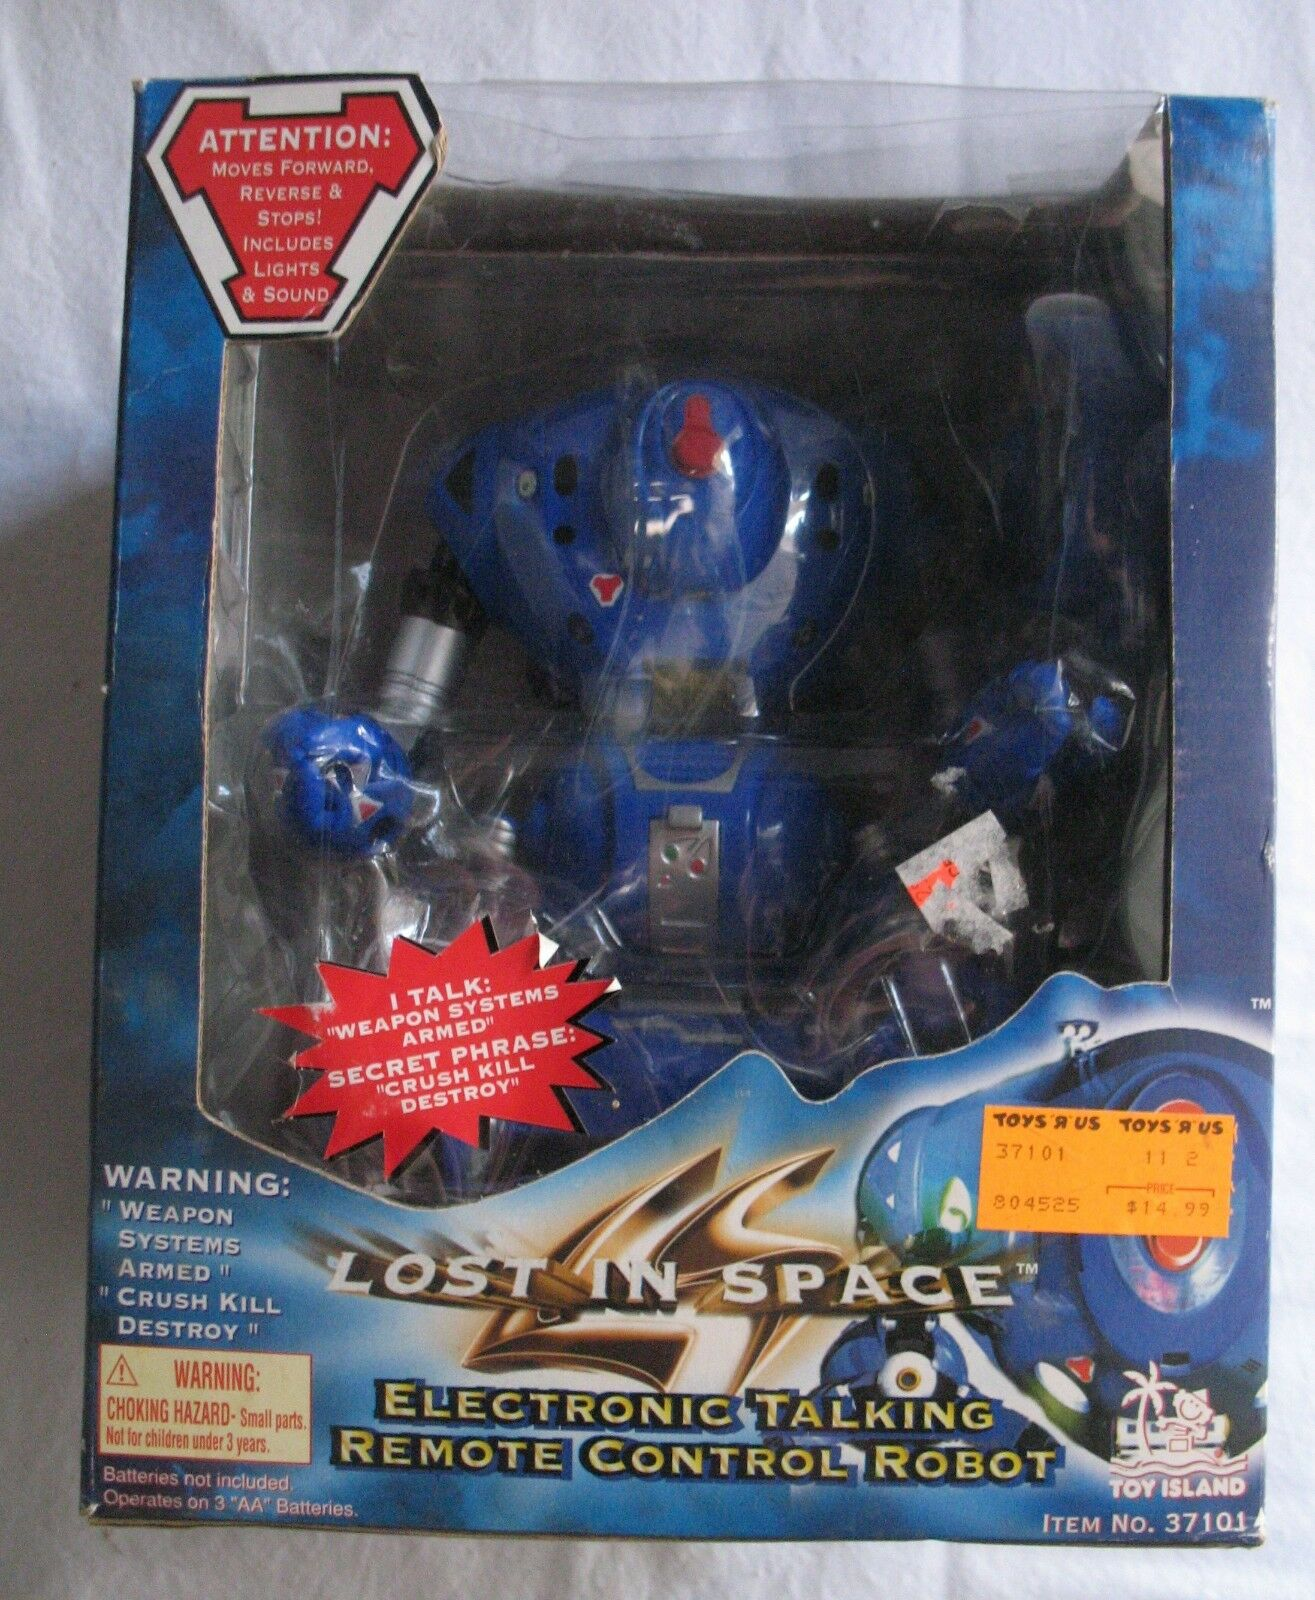 LOST IN SPACE Electronic Talking REMOTE CONTROL ROBOT Toy Island NEW IN OPEN BOX